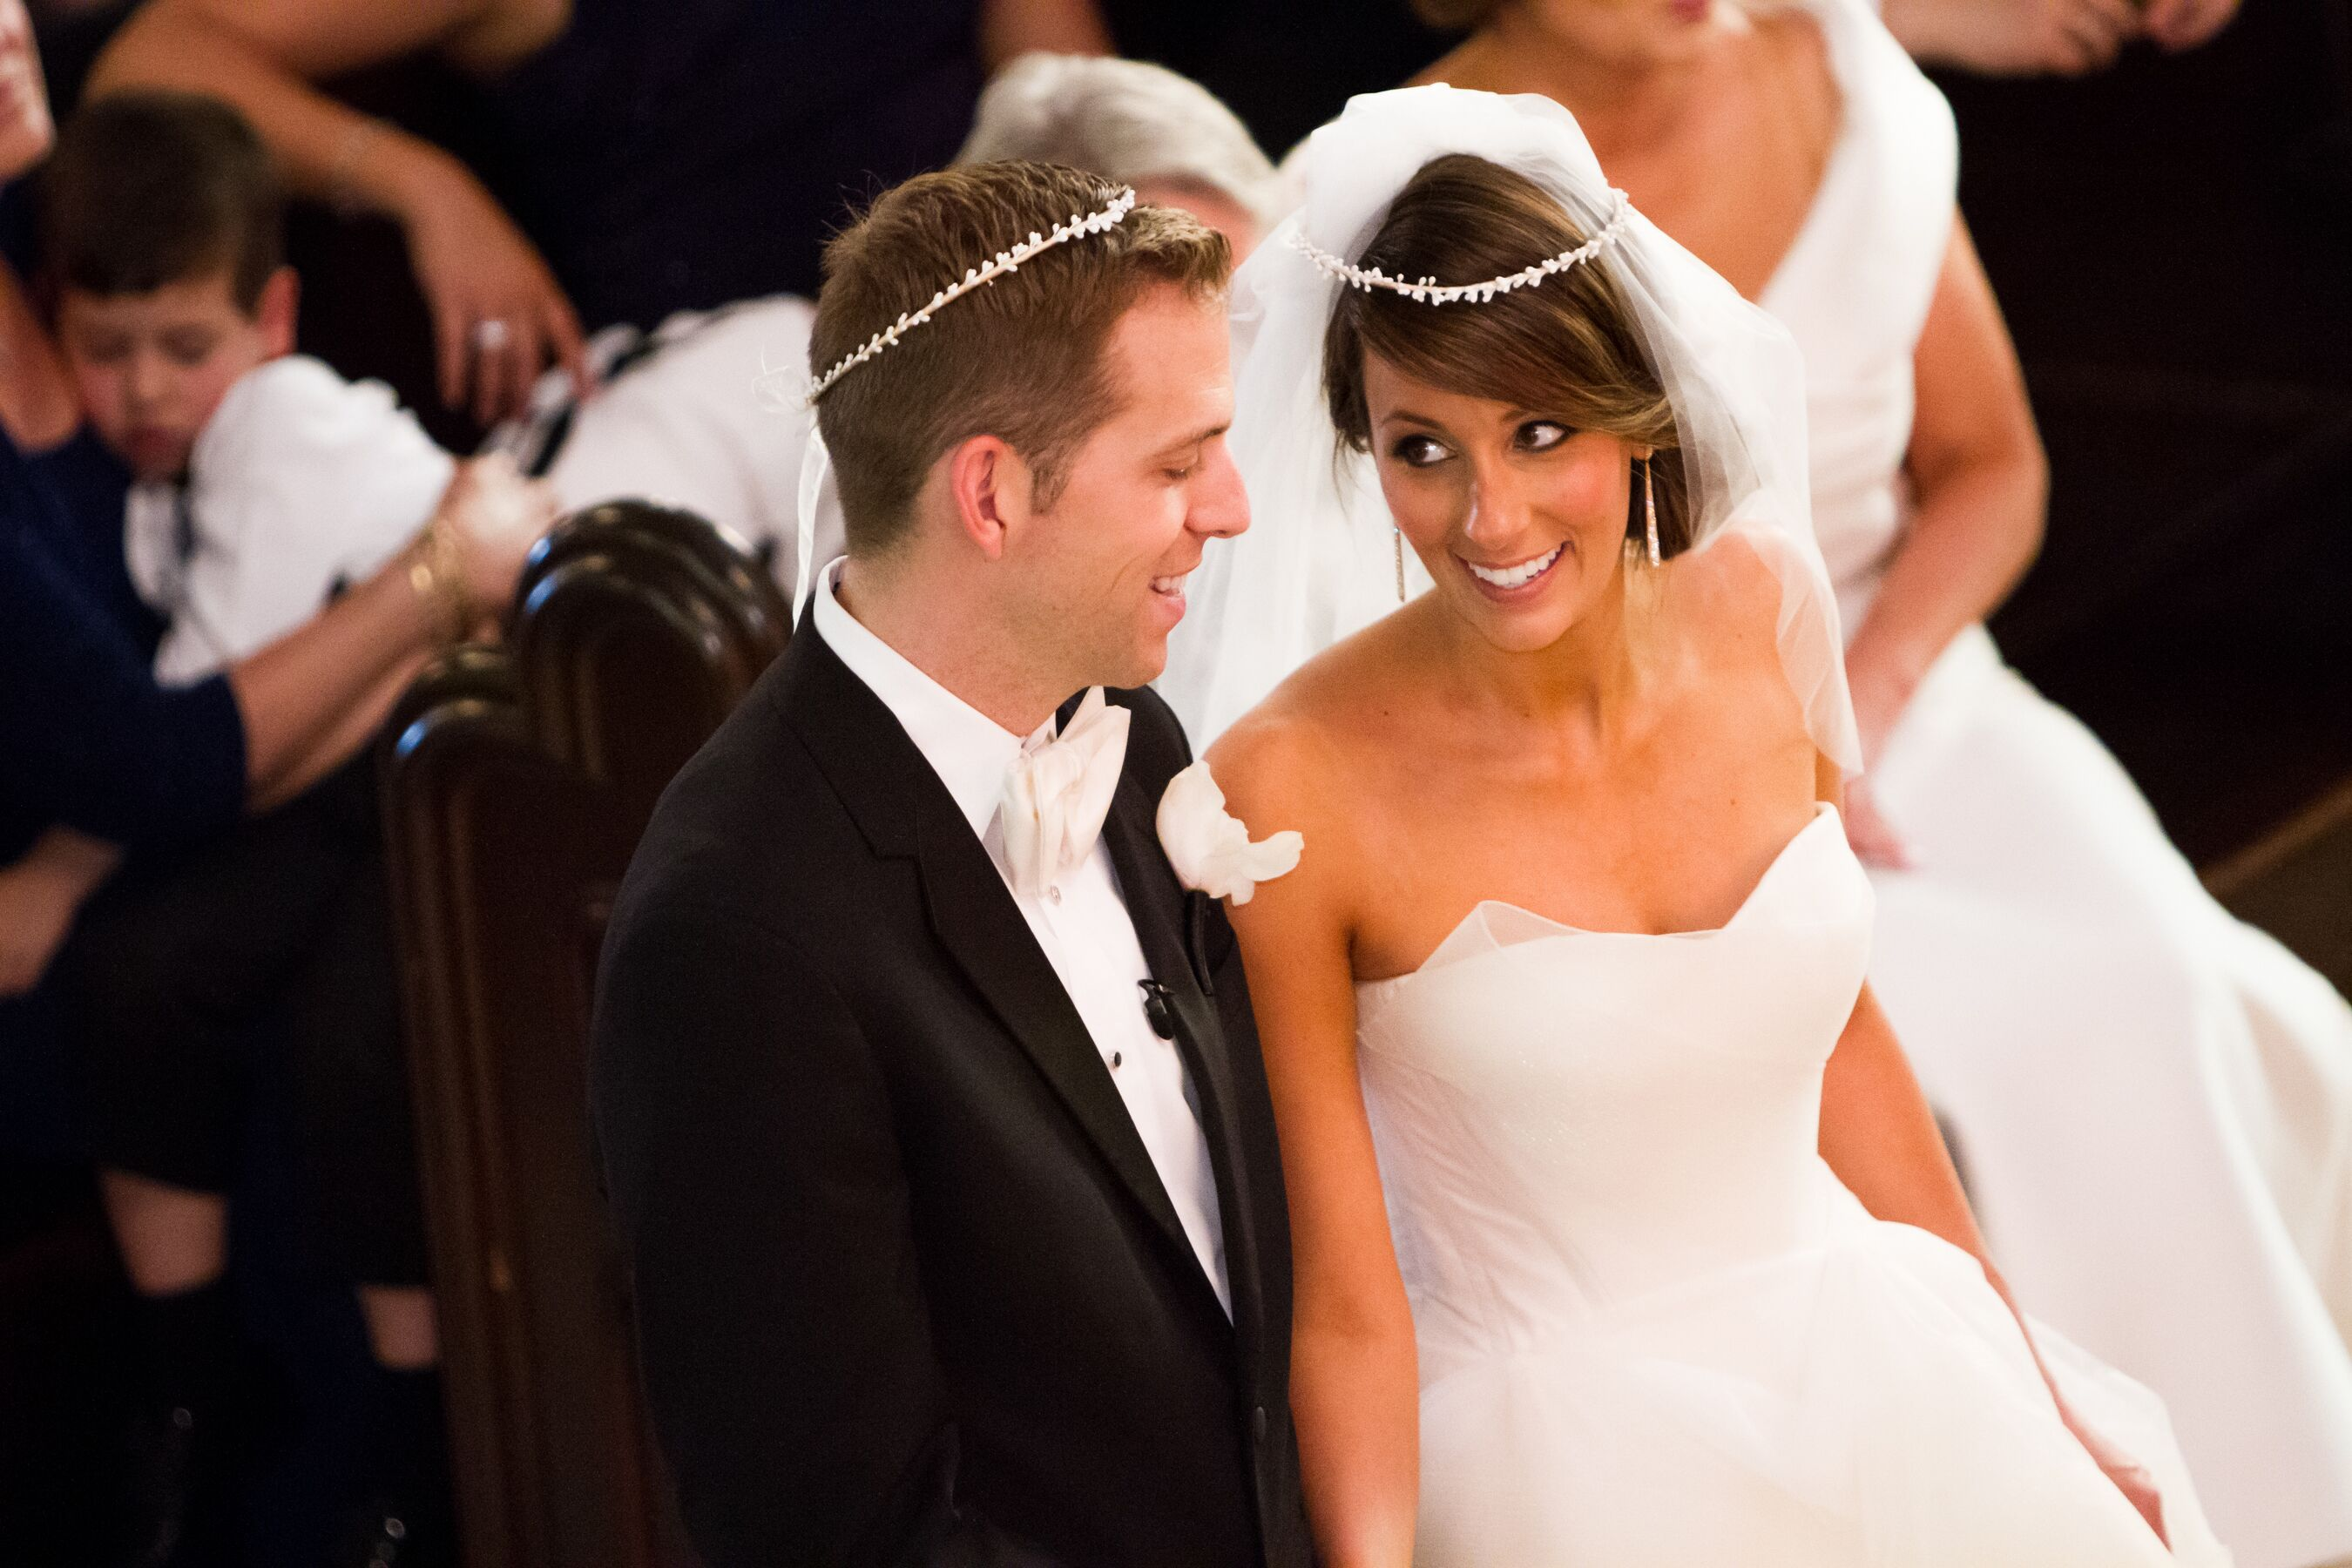 The S Greek Orthodox Wedding Ceremony Included Traditional Stefana Crowns A Symbol Of Unity